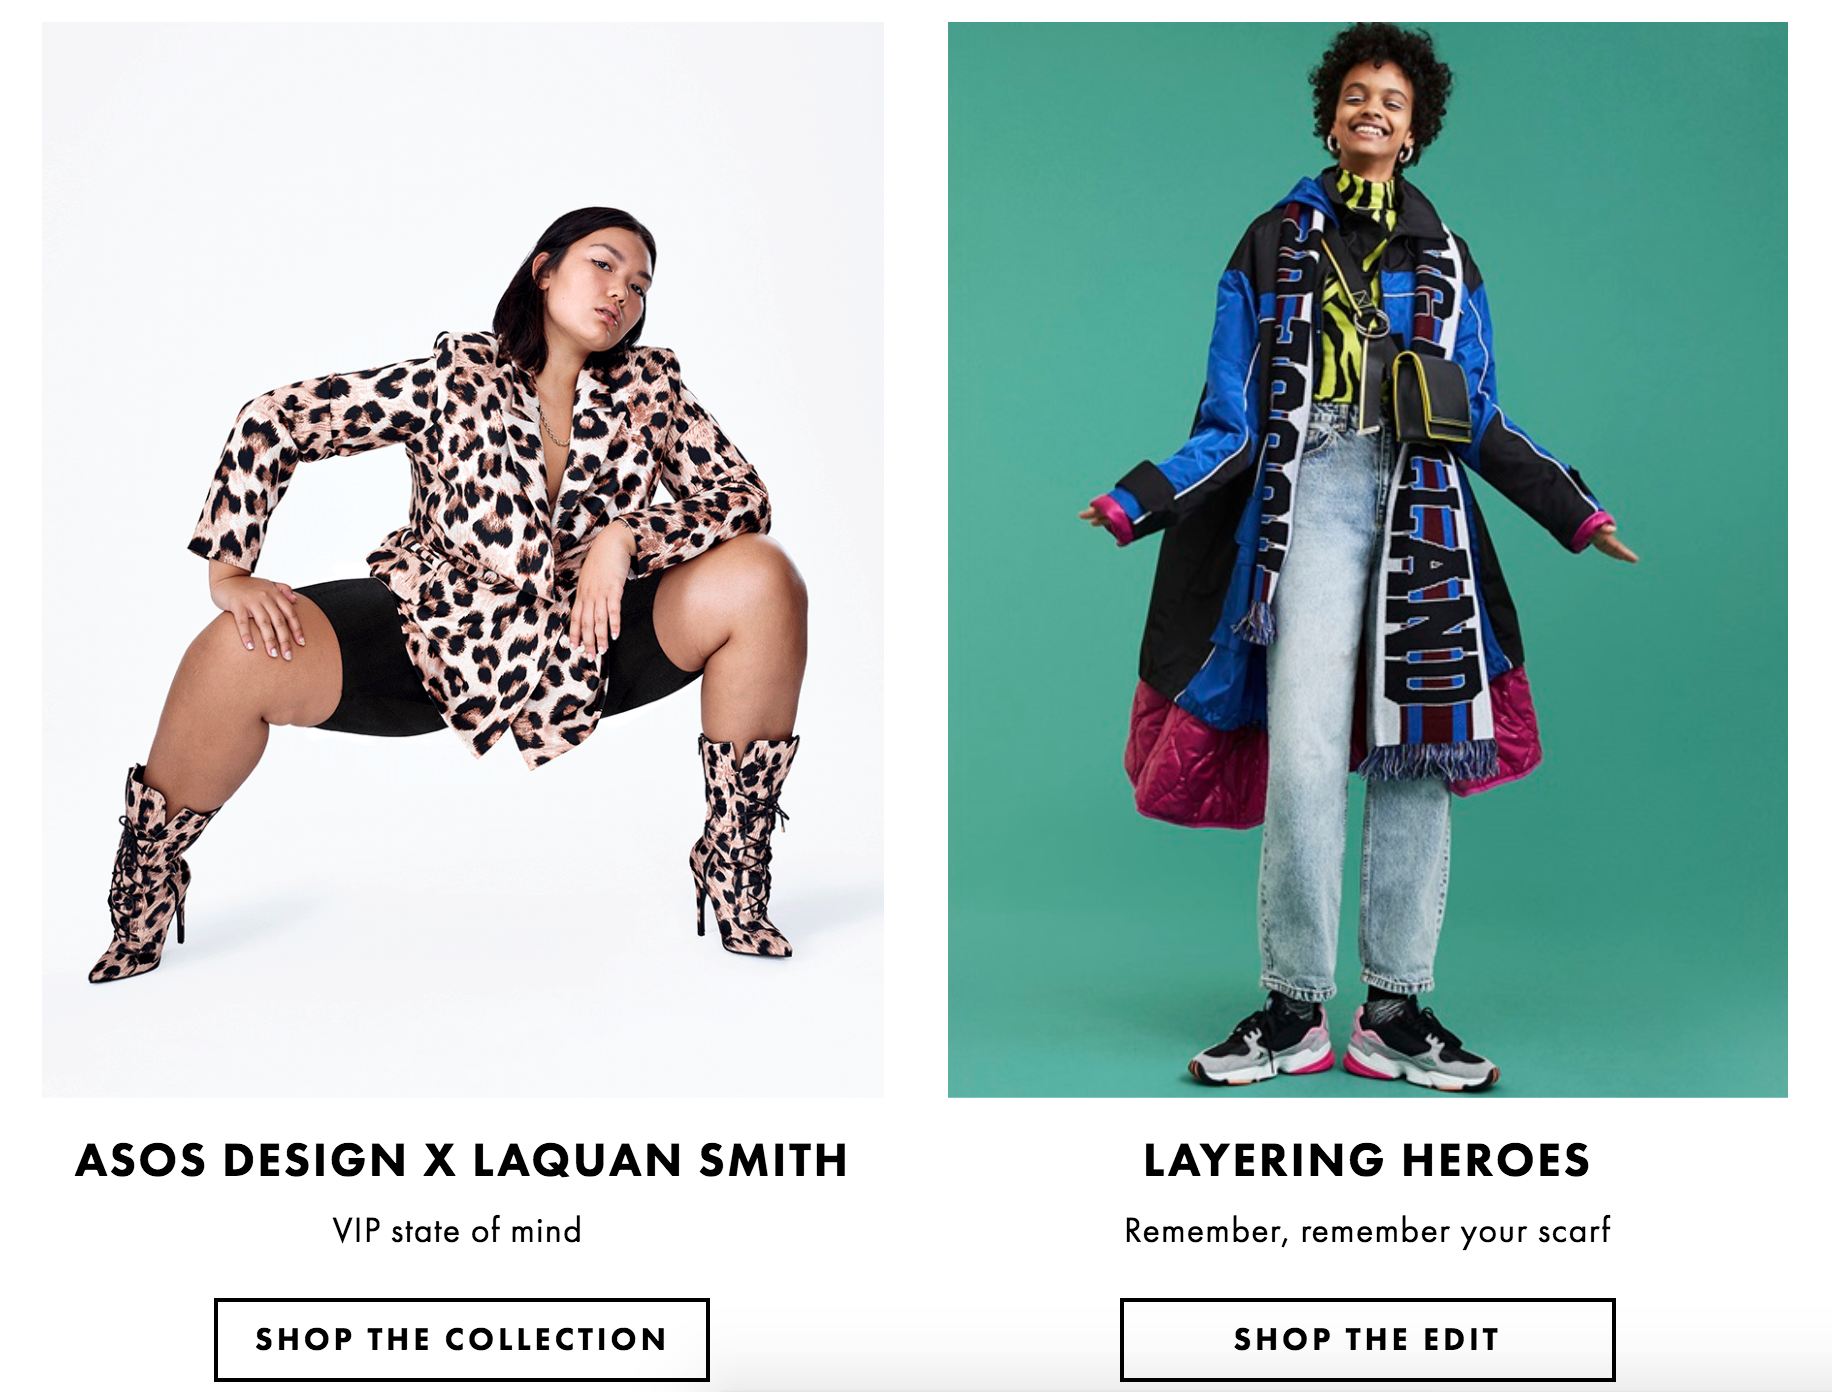 ASOS DESIGN x LaQuan Smith | Lead Editor on the project and responsible for writing the campaign messaging for global social and ASOS homepage.